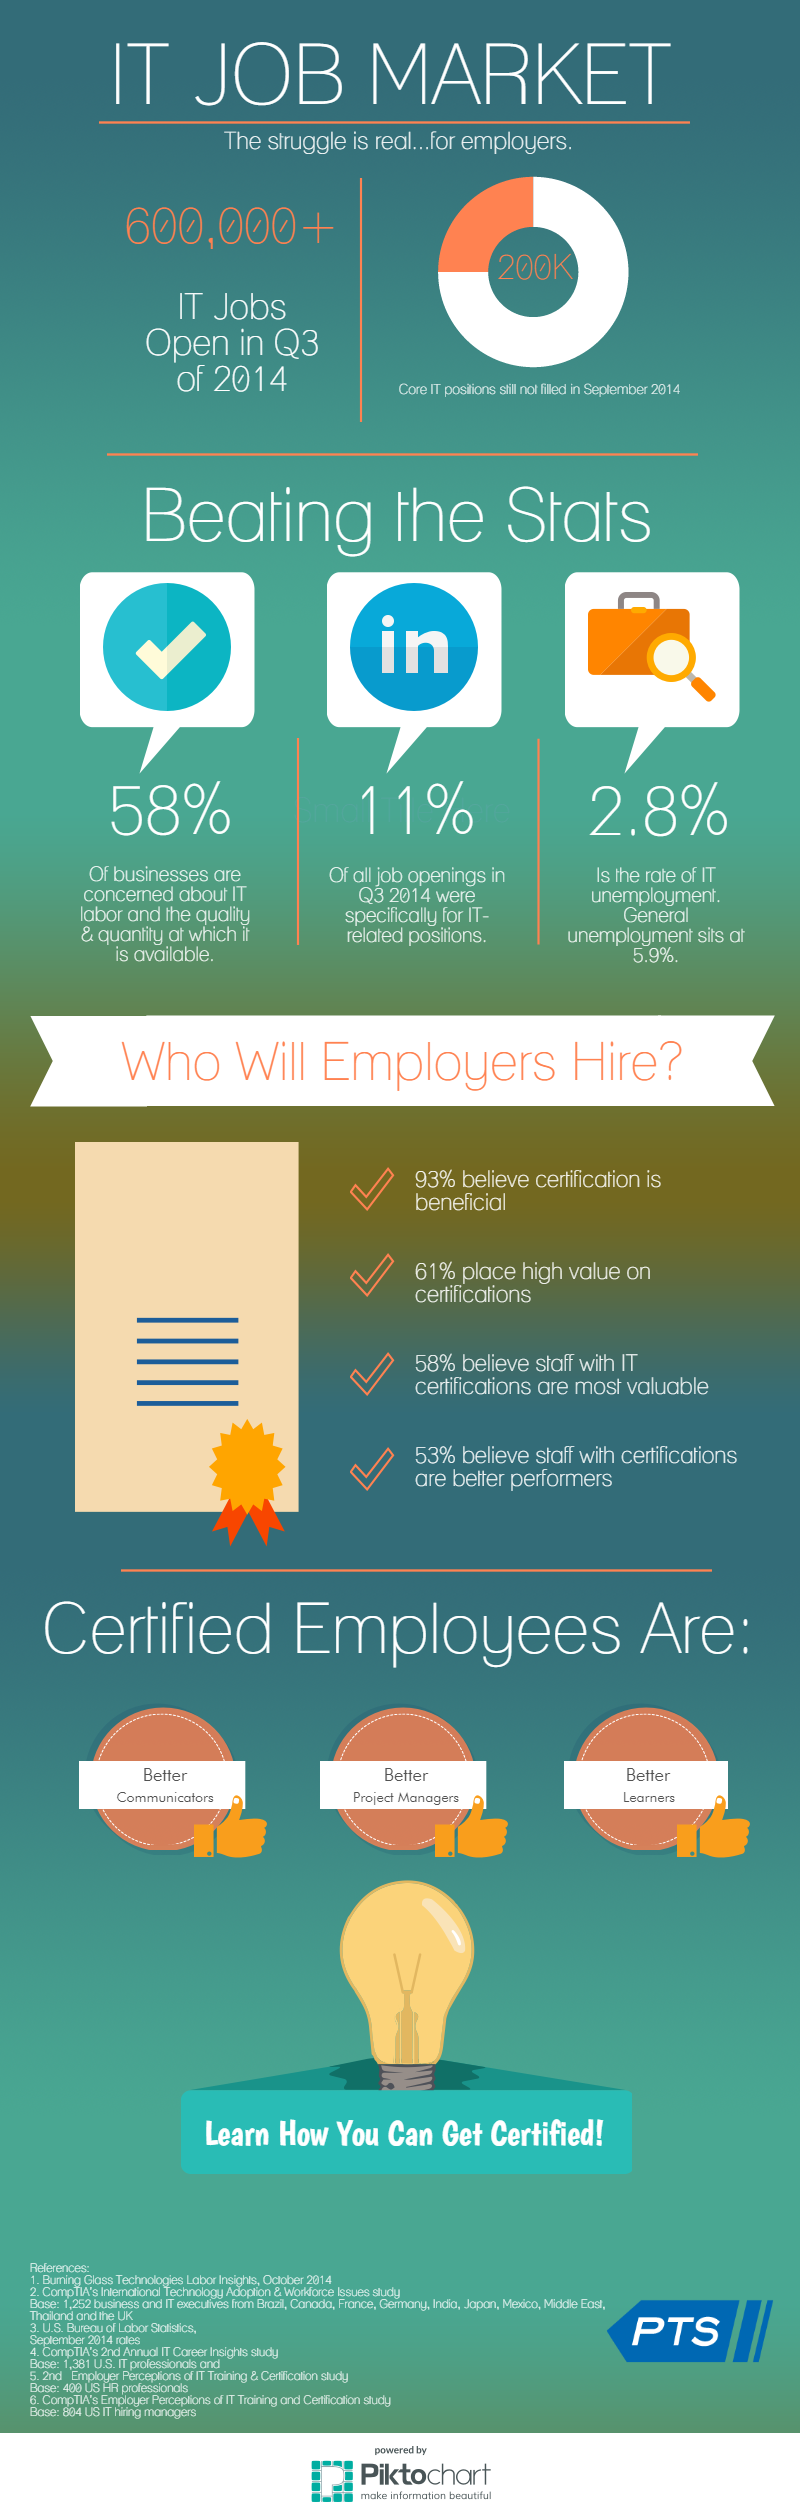 Infographic on the IT Job Market